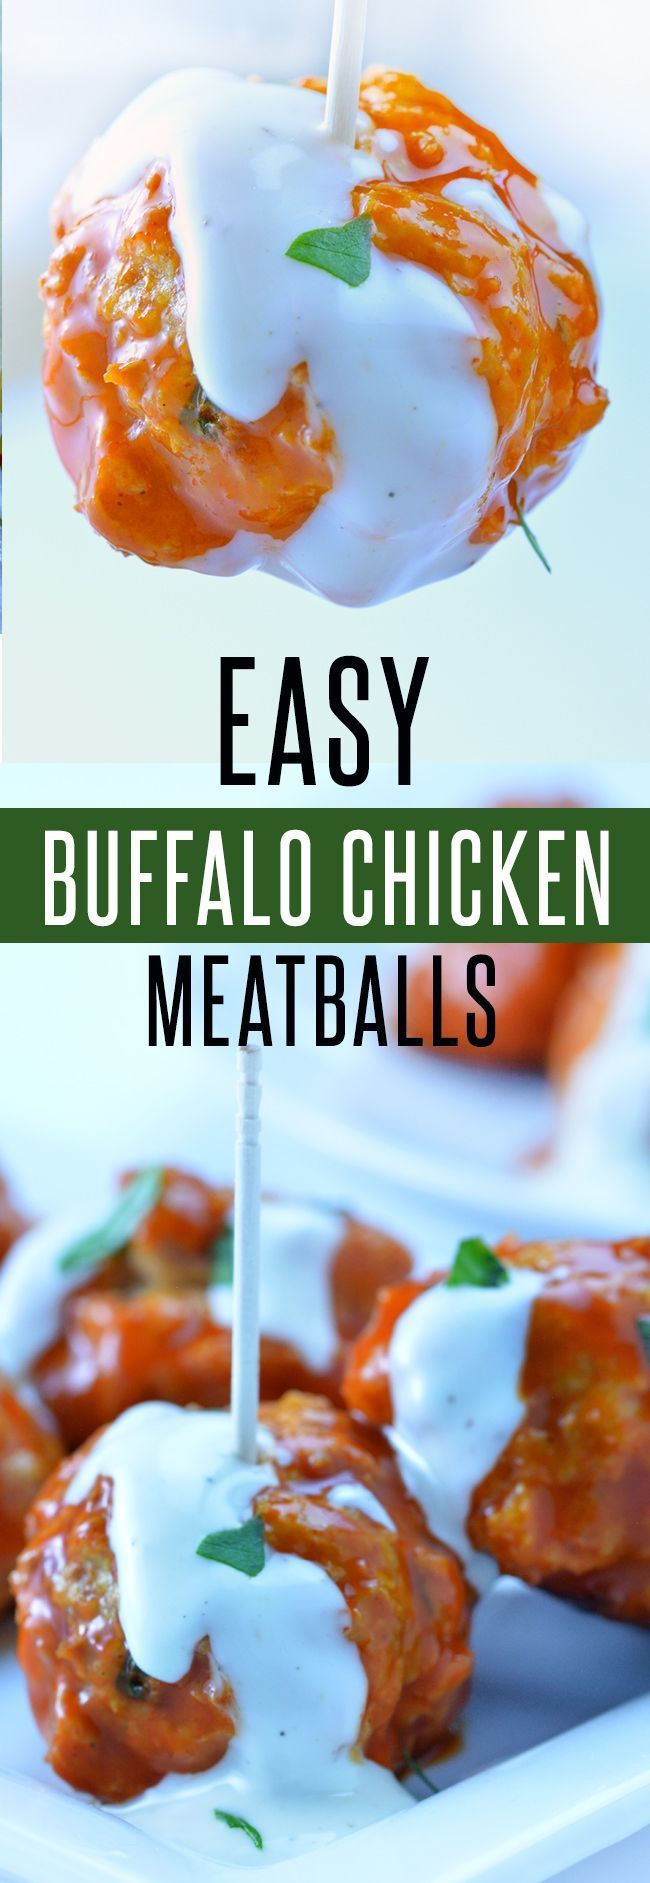 Easy Buffalo Chicken Meatballs (Oven, Slow Cooker or Instant Pot)